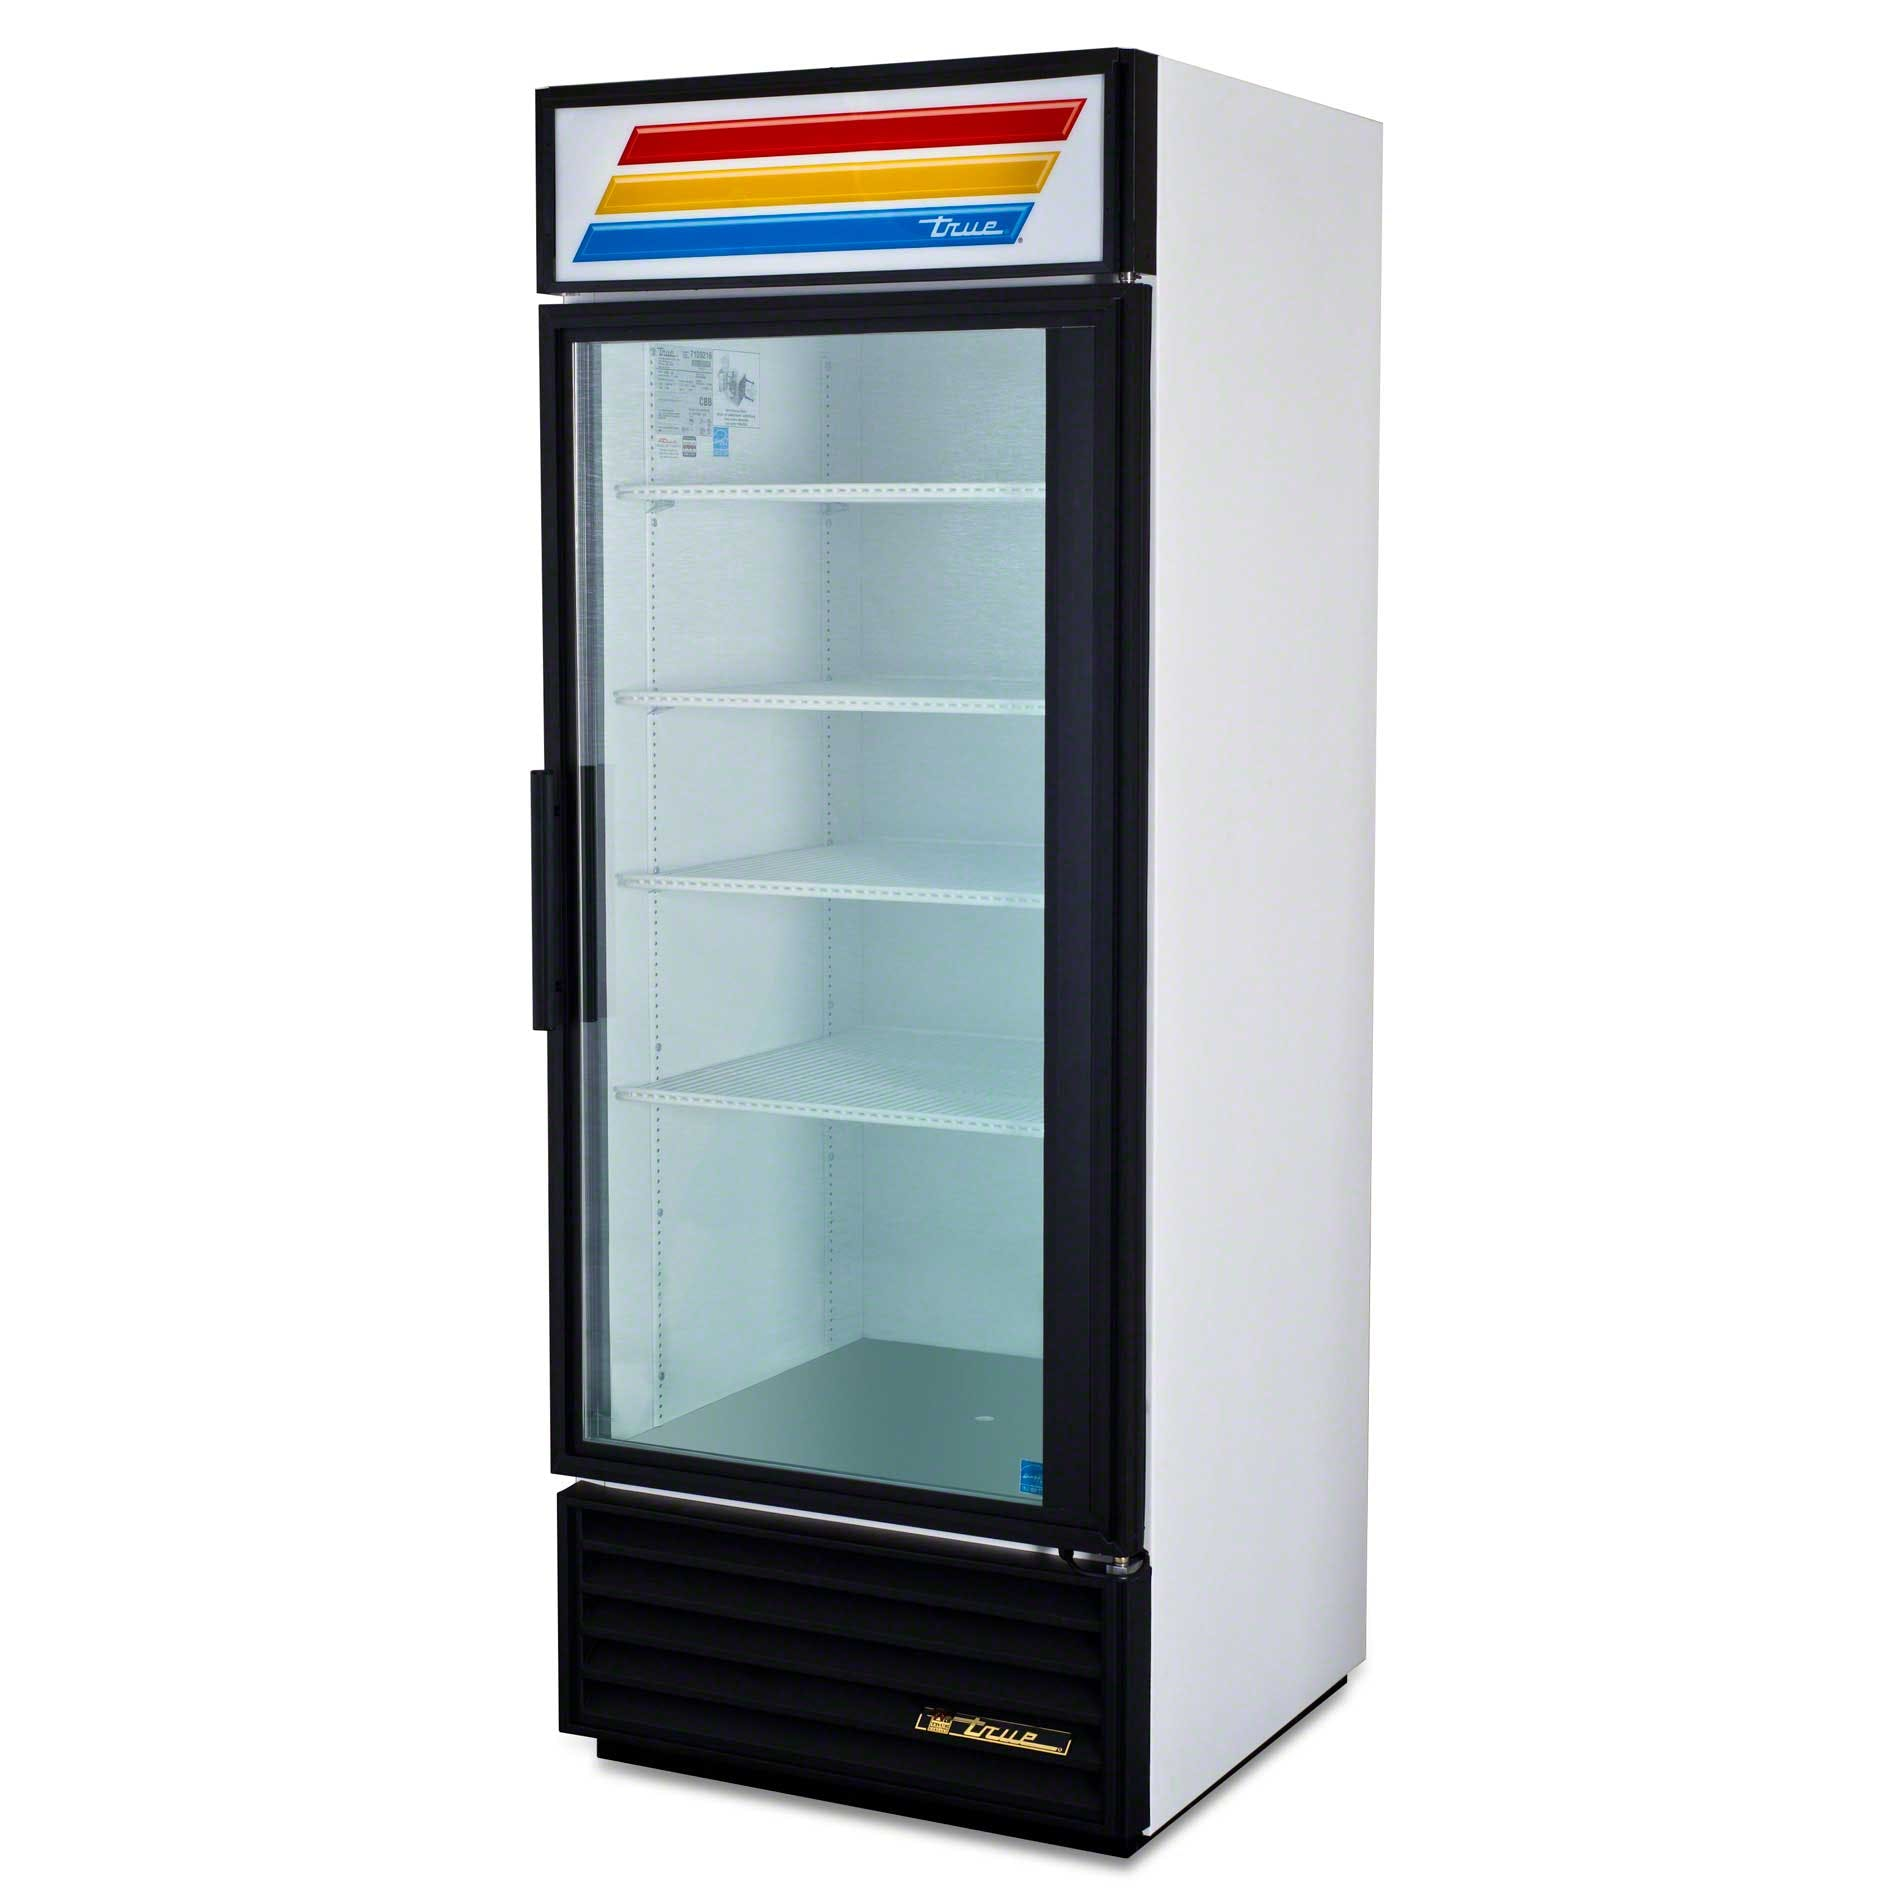 "True - GDM-26 30"" Swing Glass Door Merchandiser Refrigerator Commercial refrigerator sold by Food Service Warehouse"